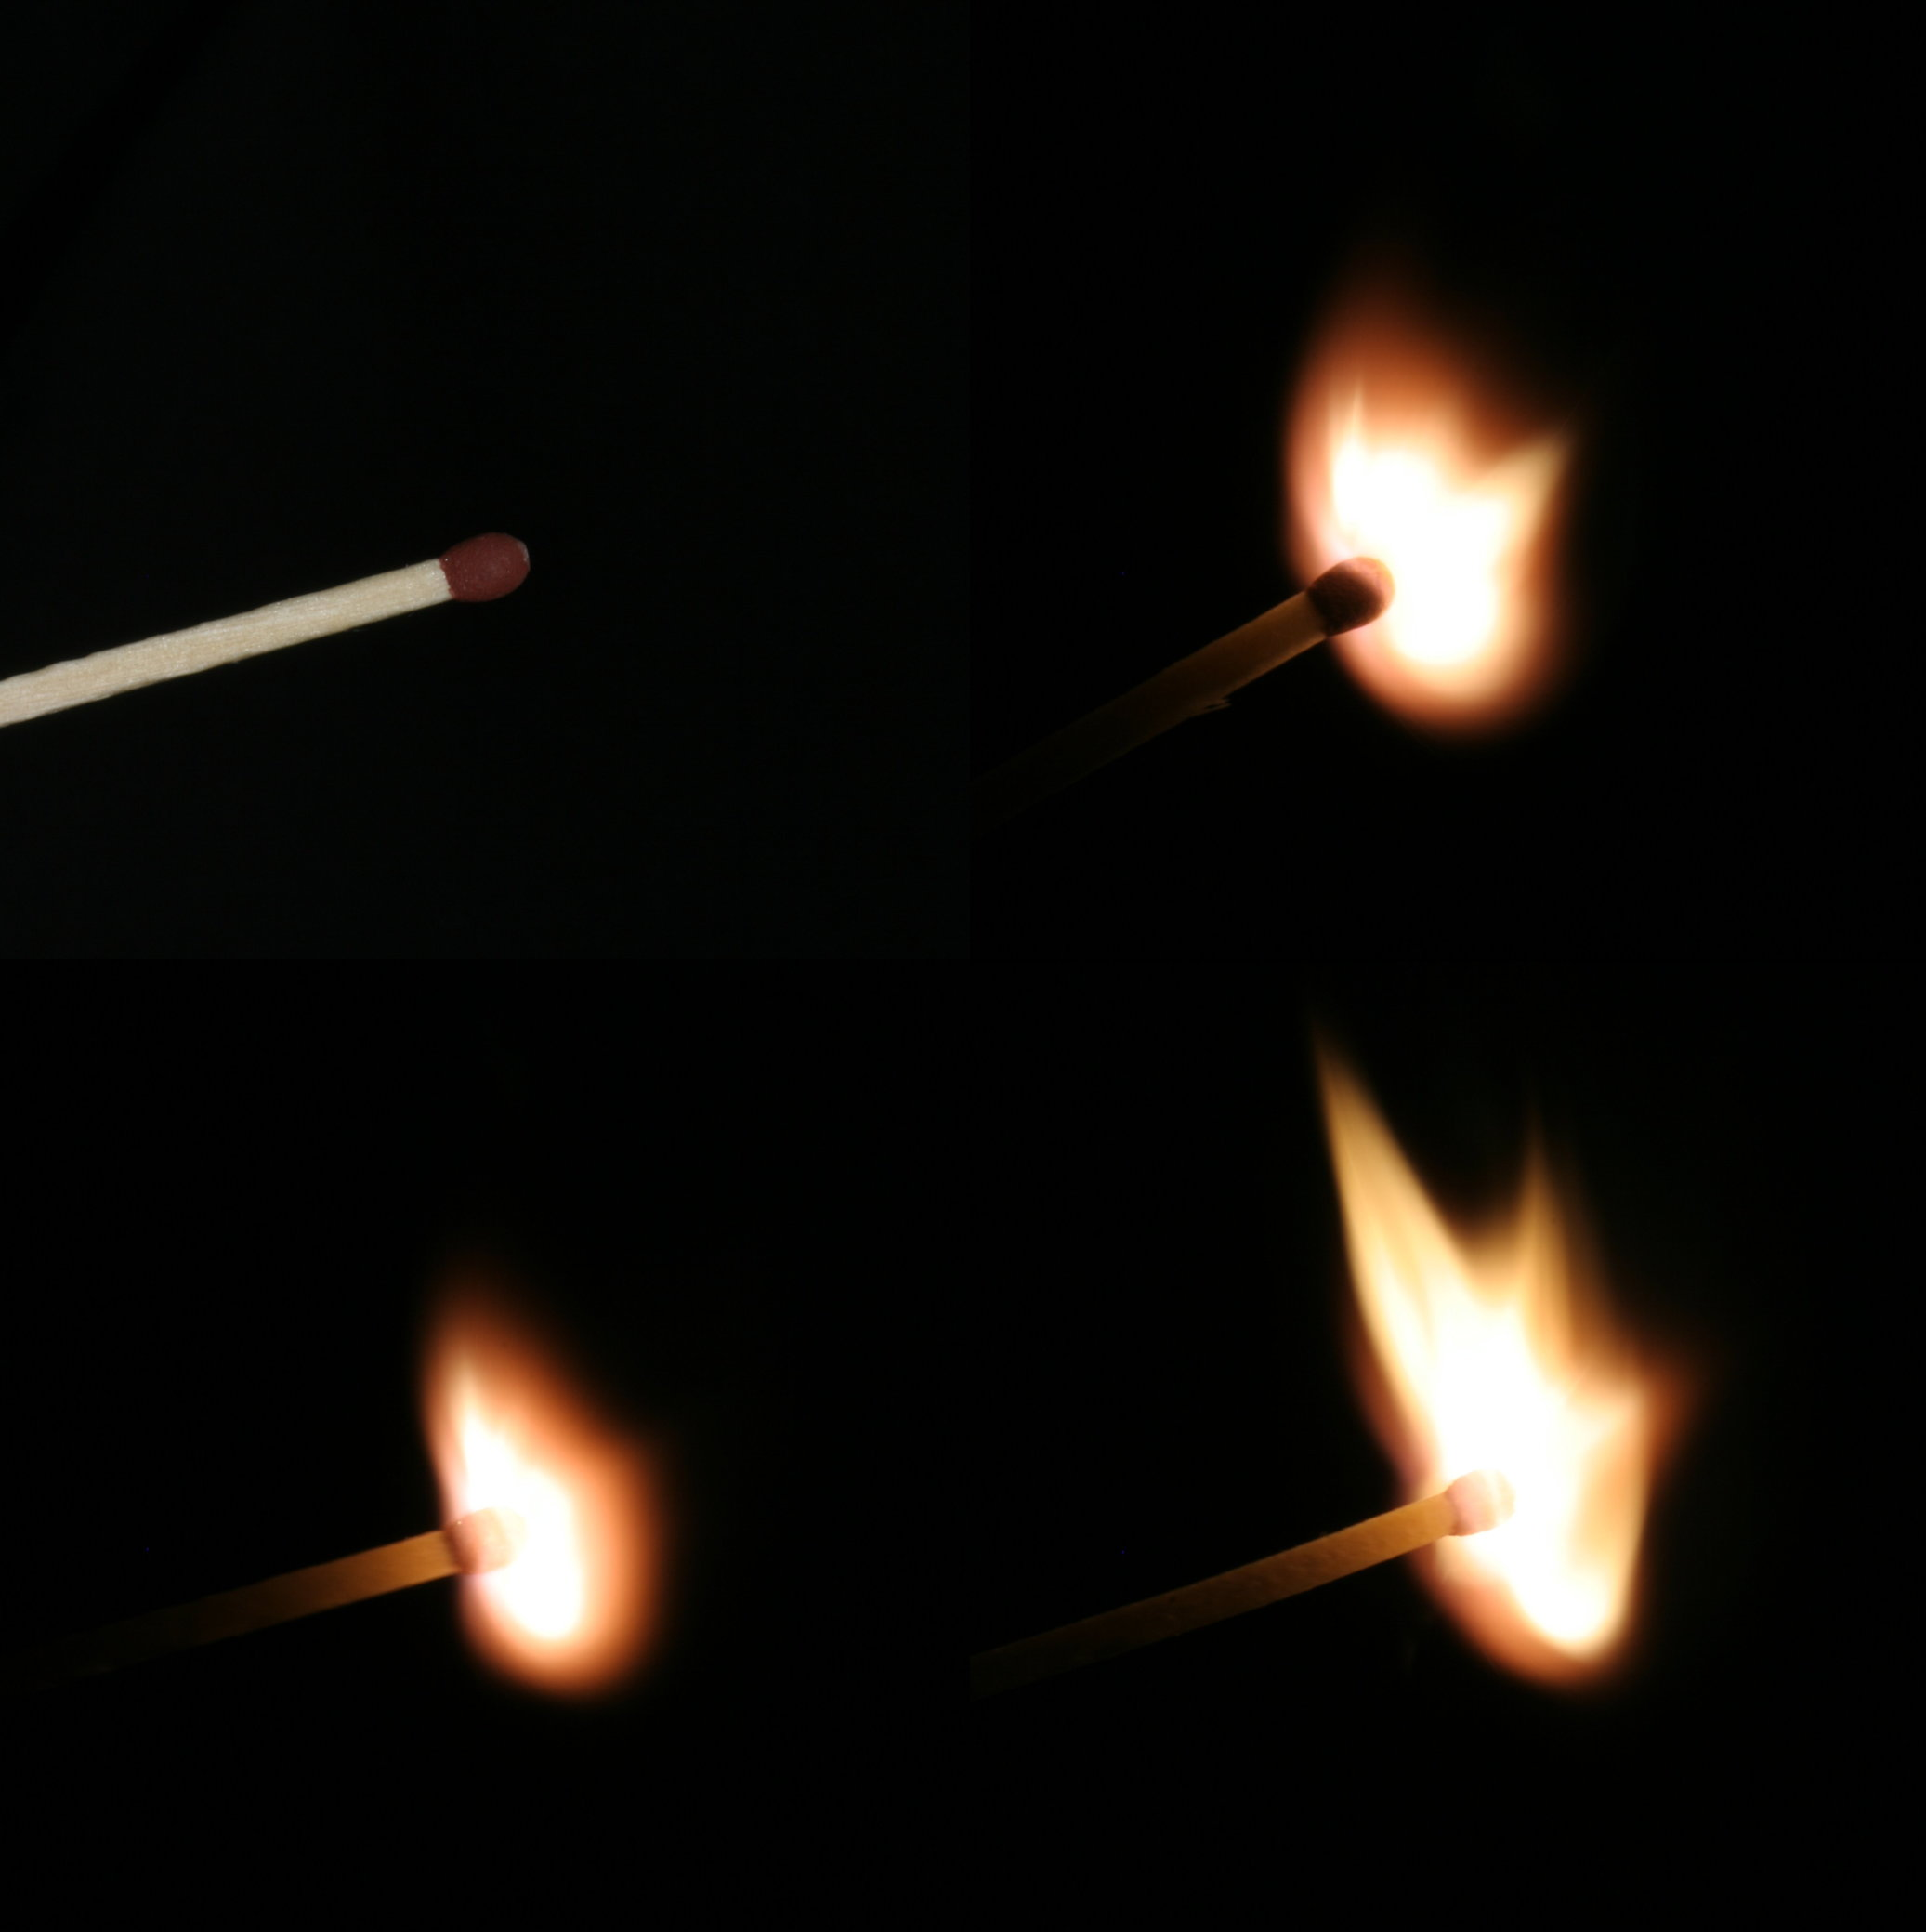 File:Ignition of a match.jpg - Wikipedia, the free encyclopedia